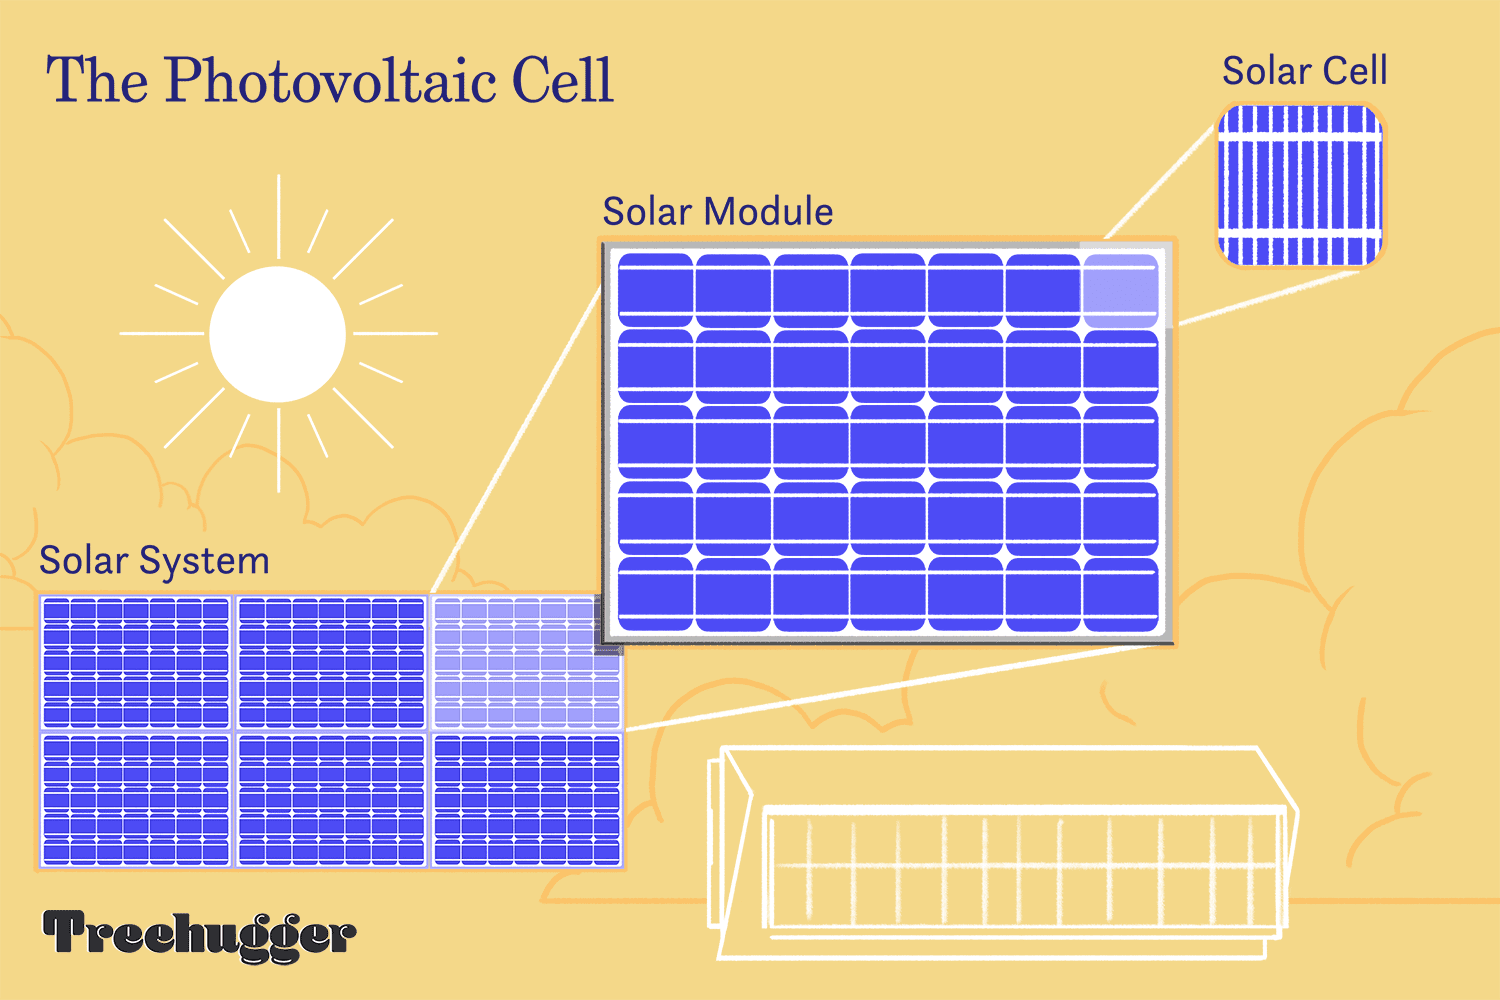 photovoltaic cell illustration